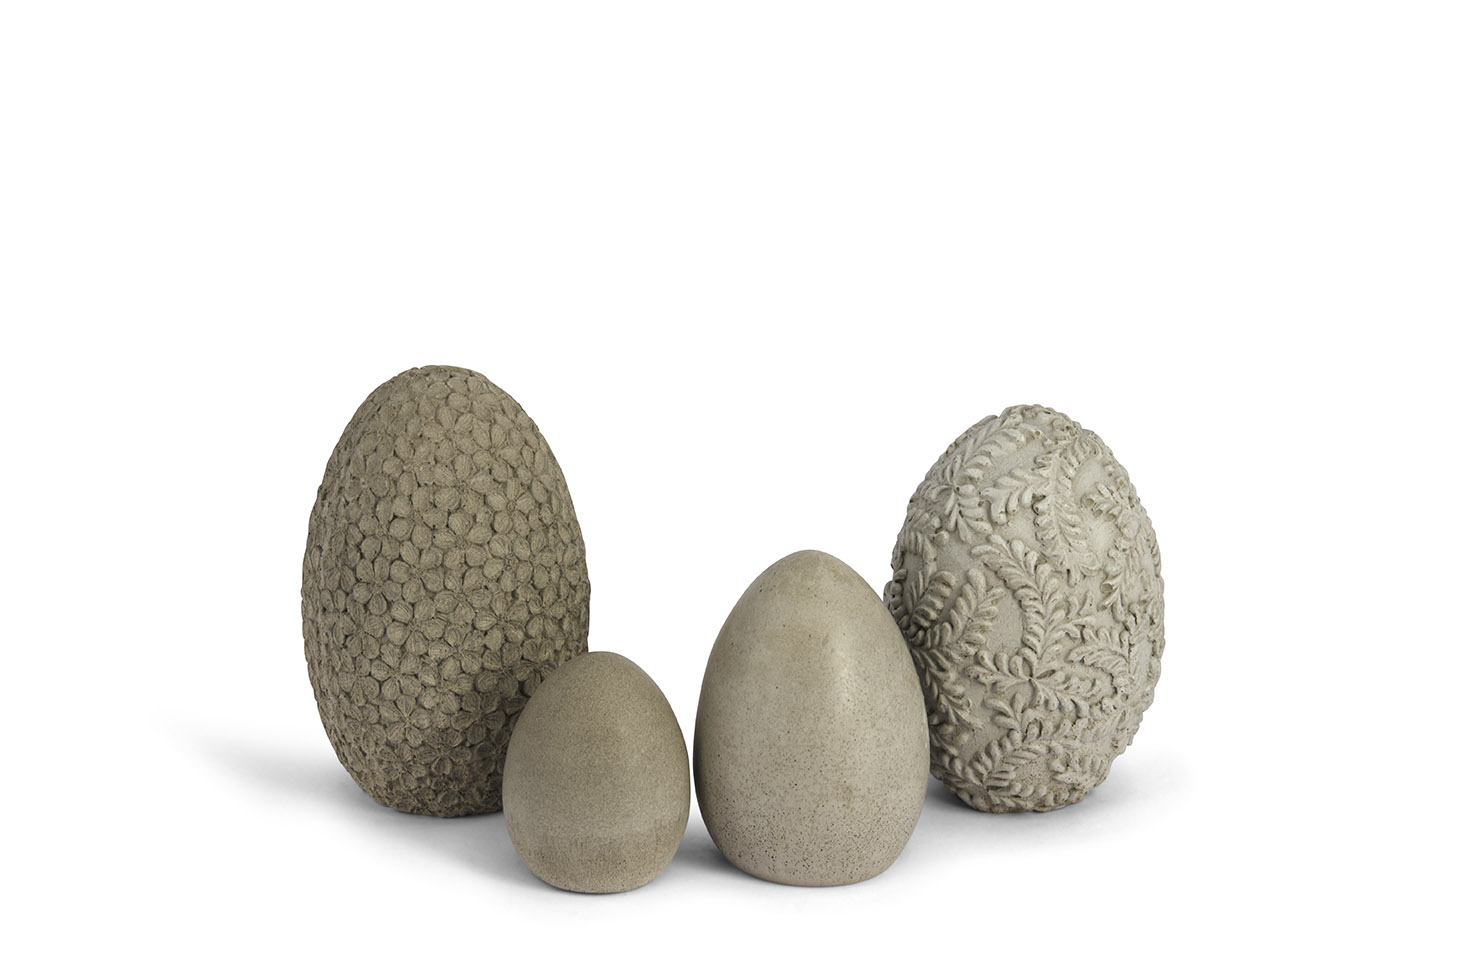 Concrete Egg